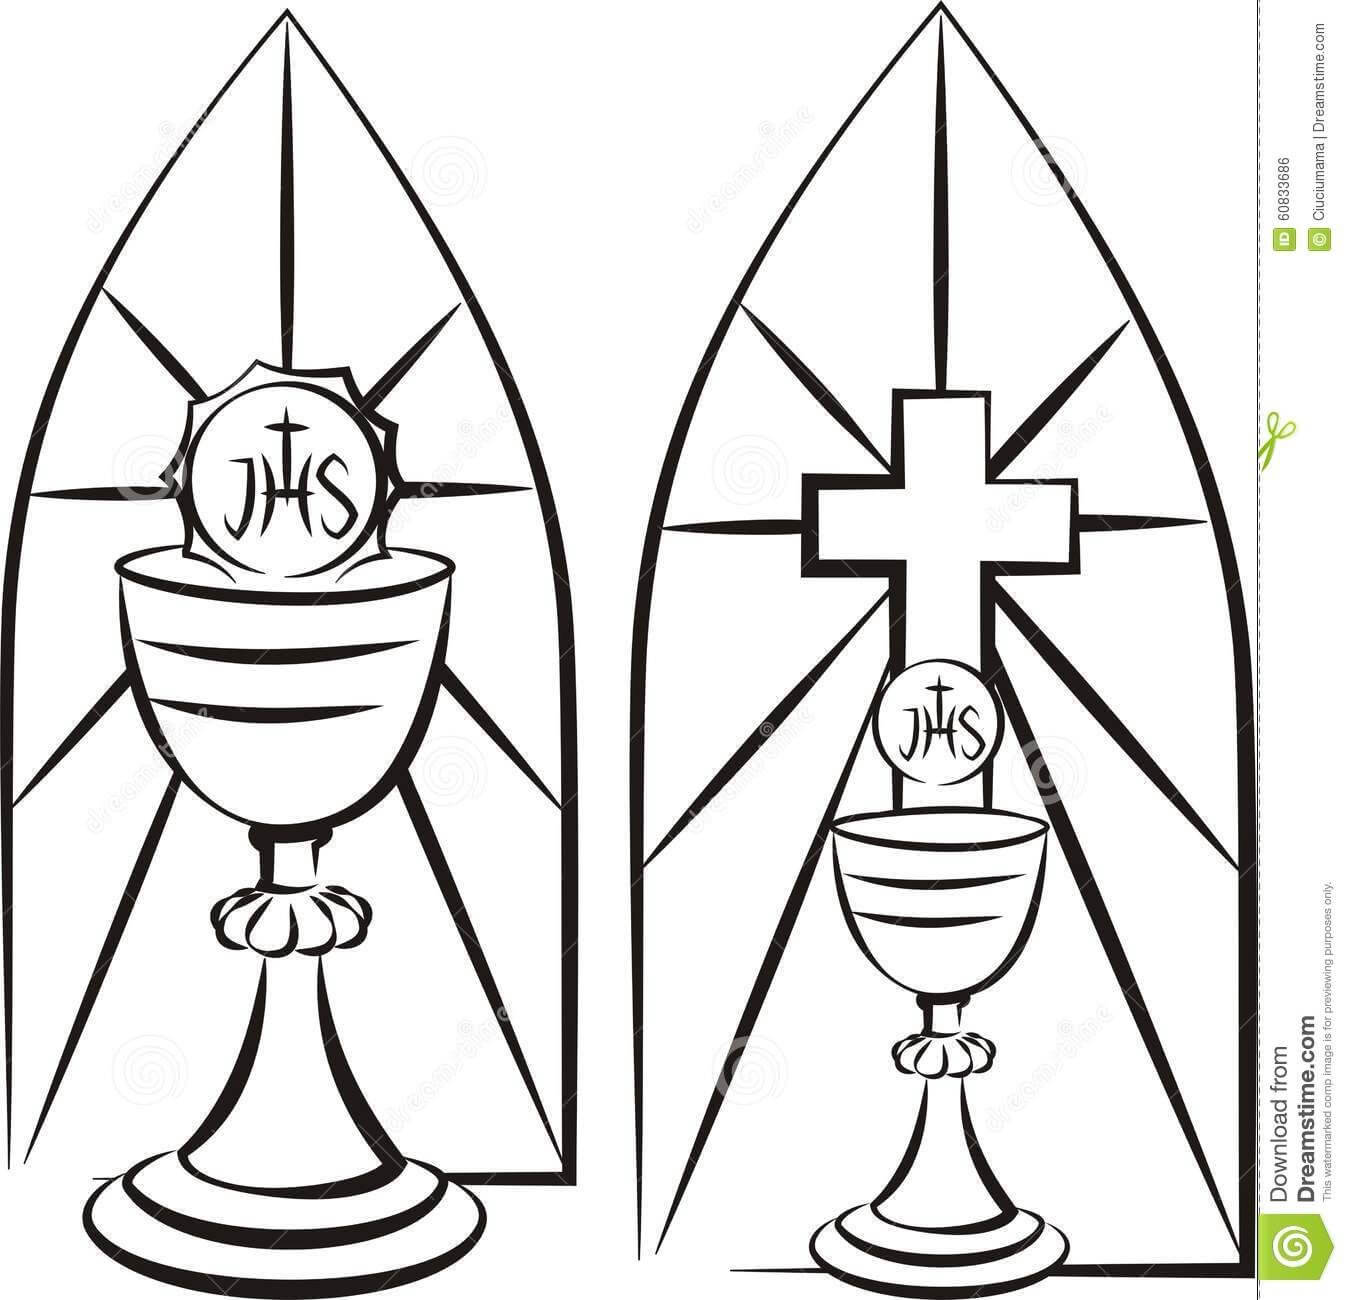 Image Result For Stain Glass First Communion Banner Template with regard to First Communion Banner Templates